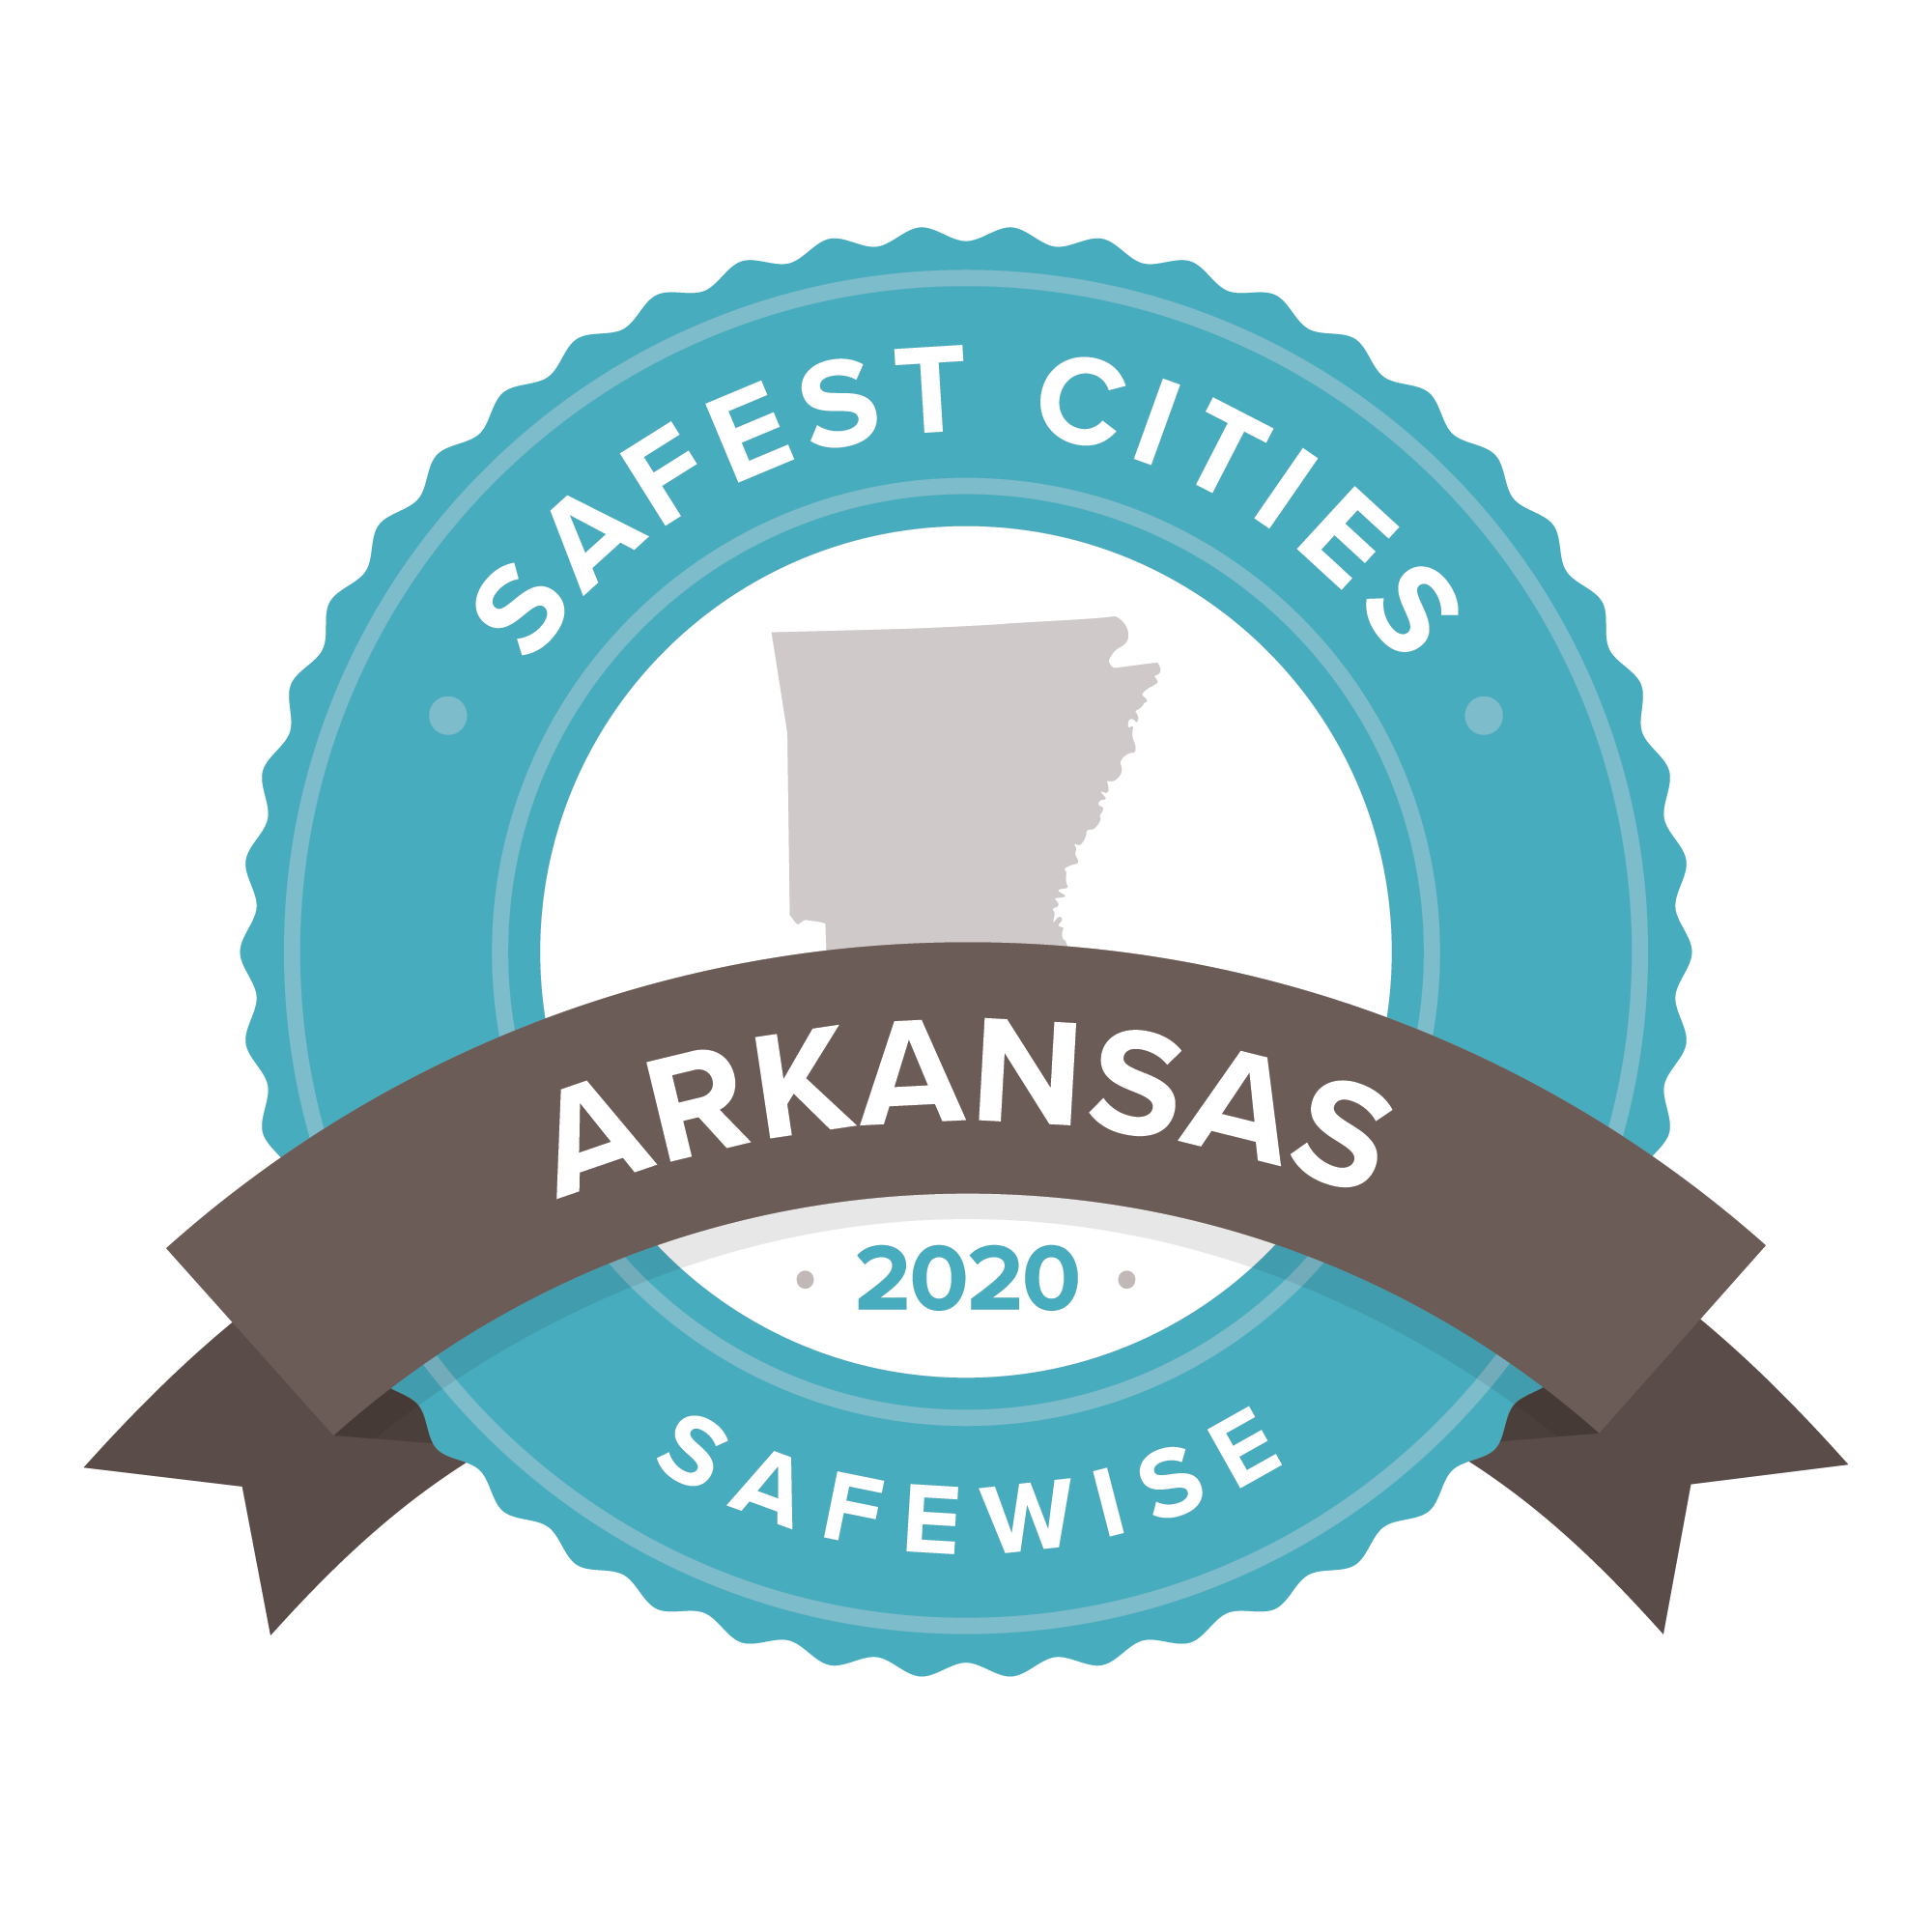 Arkansas safest cities badge 2020